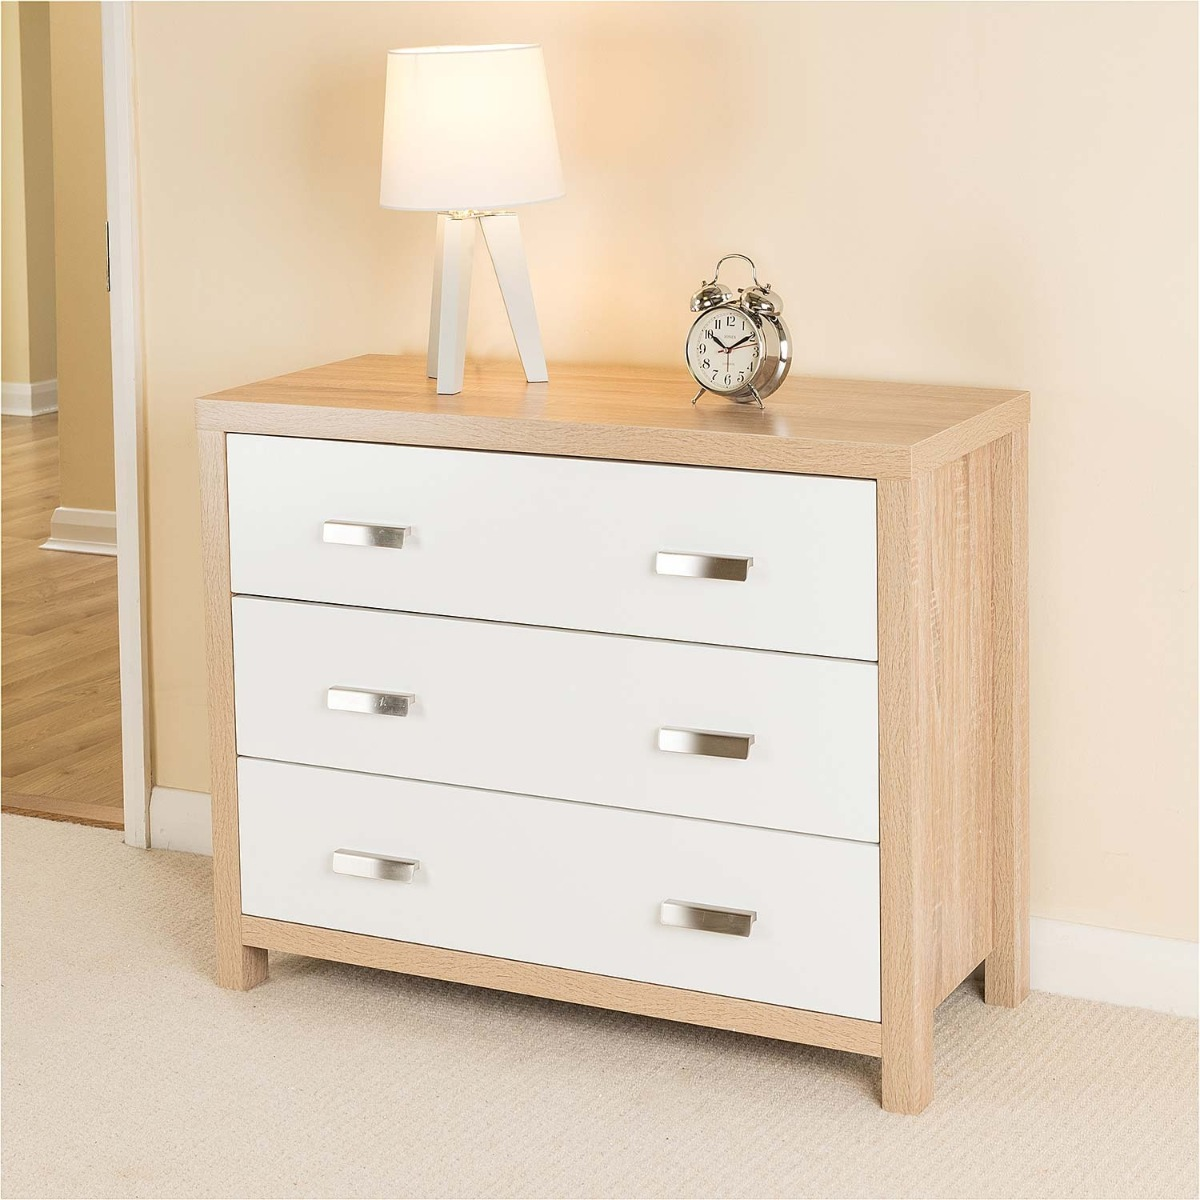 Cabinet Bedroom Furniture: Bedroom Furniture Chest Of Drawers Bed Side Table Cabinet